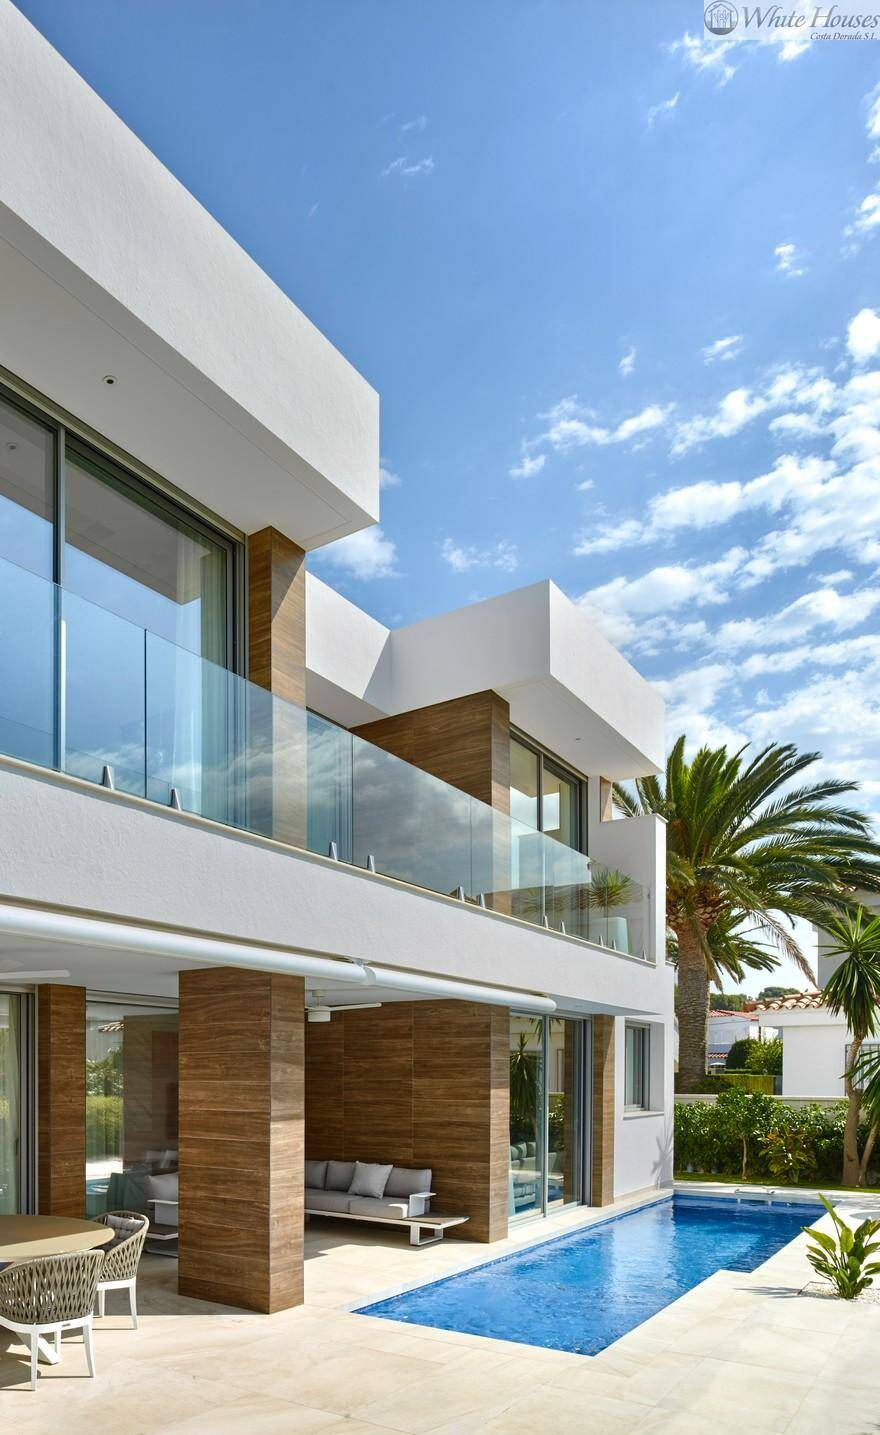 Seaview House Designed By Parsonson Architects: Modern Single-Family Villa With An Astonishing Sea View To